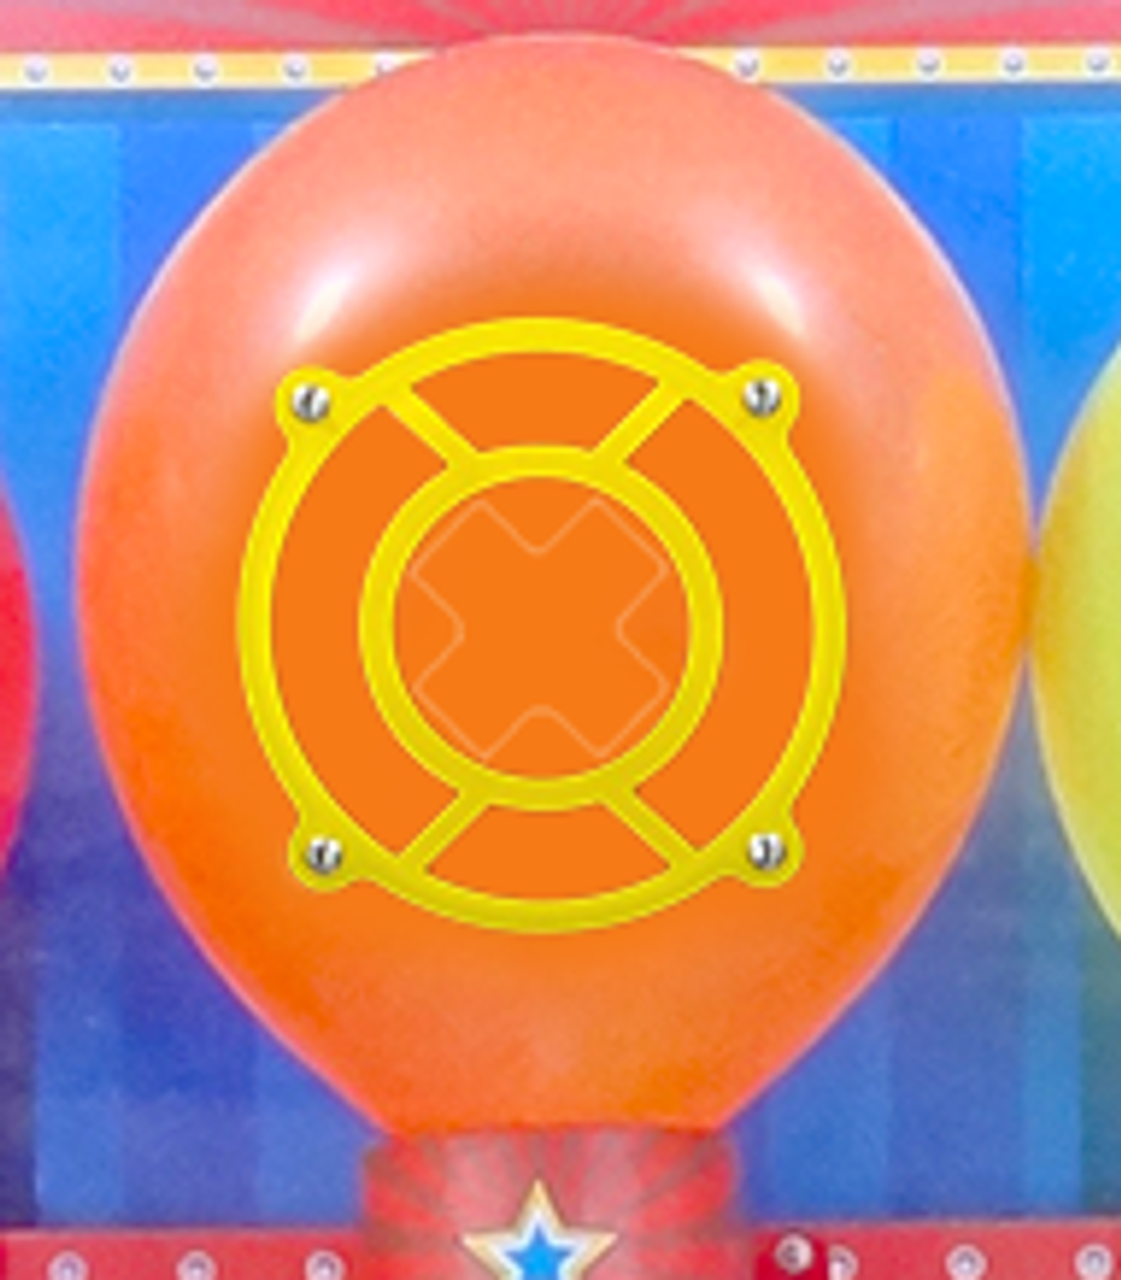 Balloon Buster Skill Target Plate (BB1-FP-039-R0)